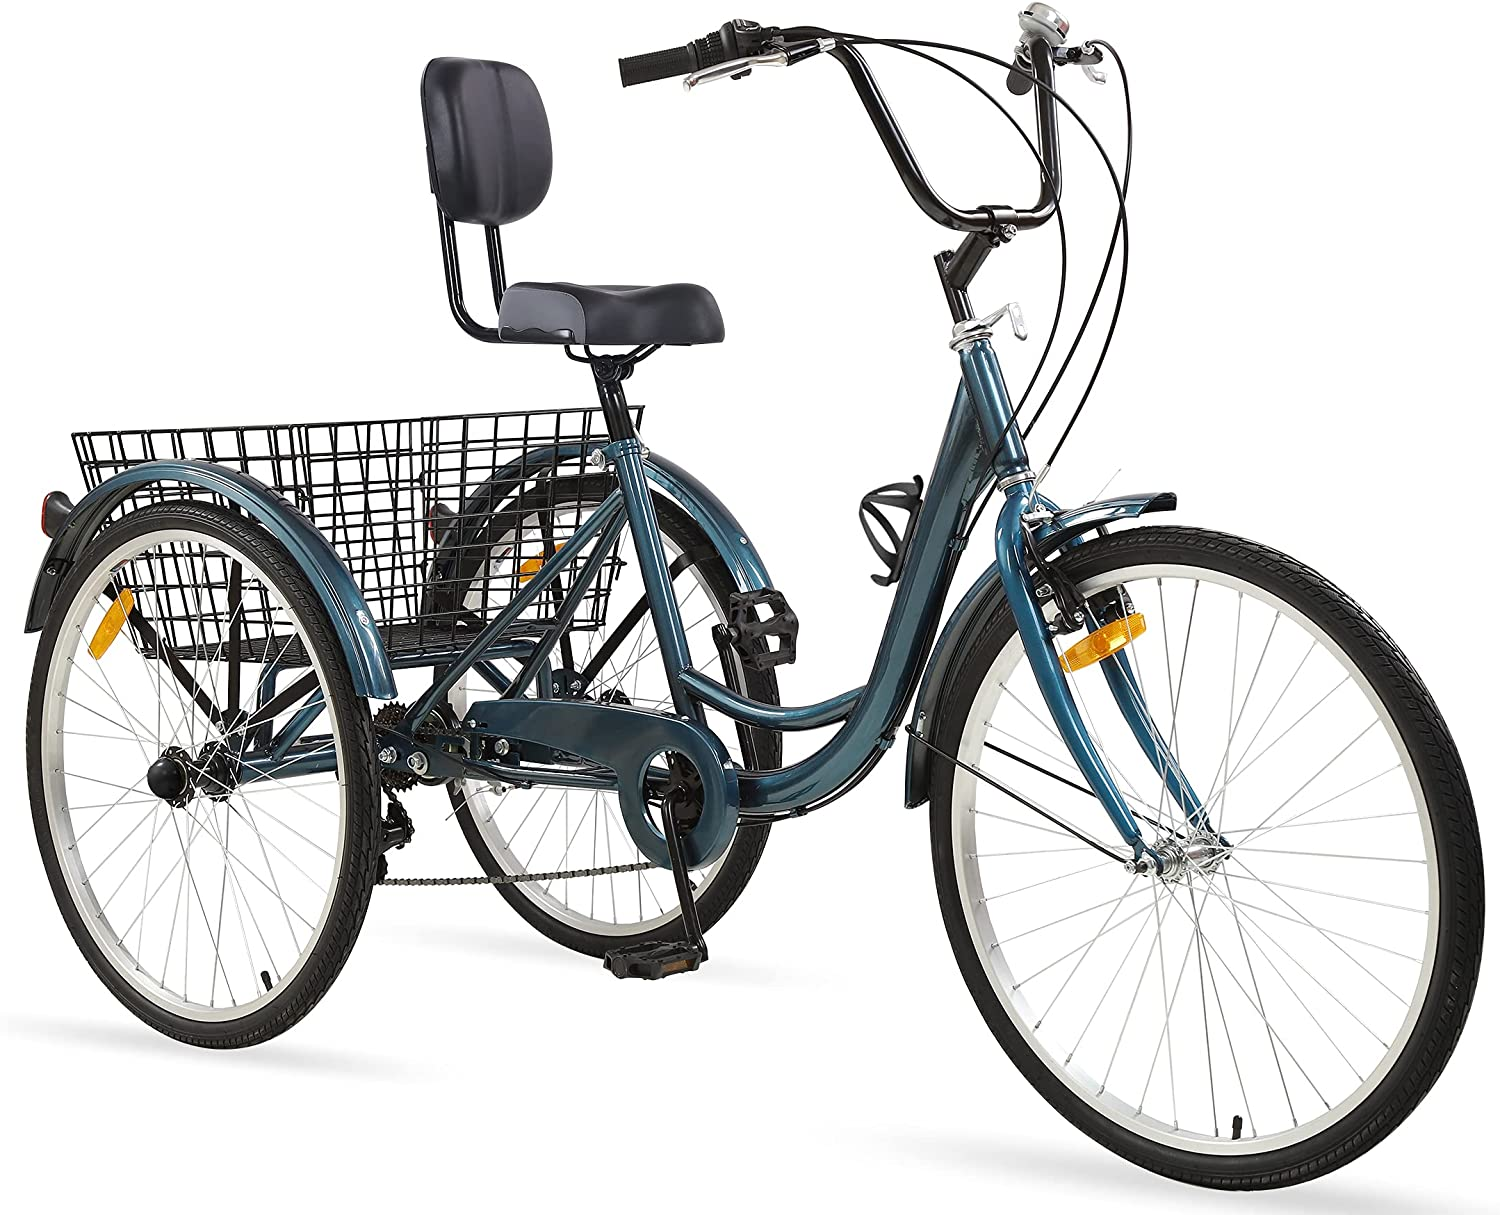 Hangnuo Adult Tricycles Ranking integrated 1st place 7 Speed Tricycle inc Max 45% OFF 26 Trikes 24